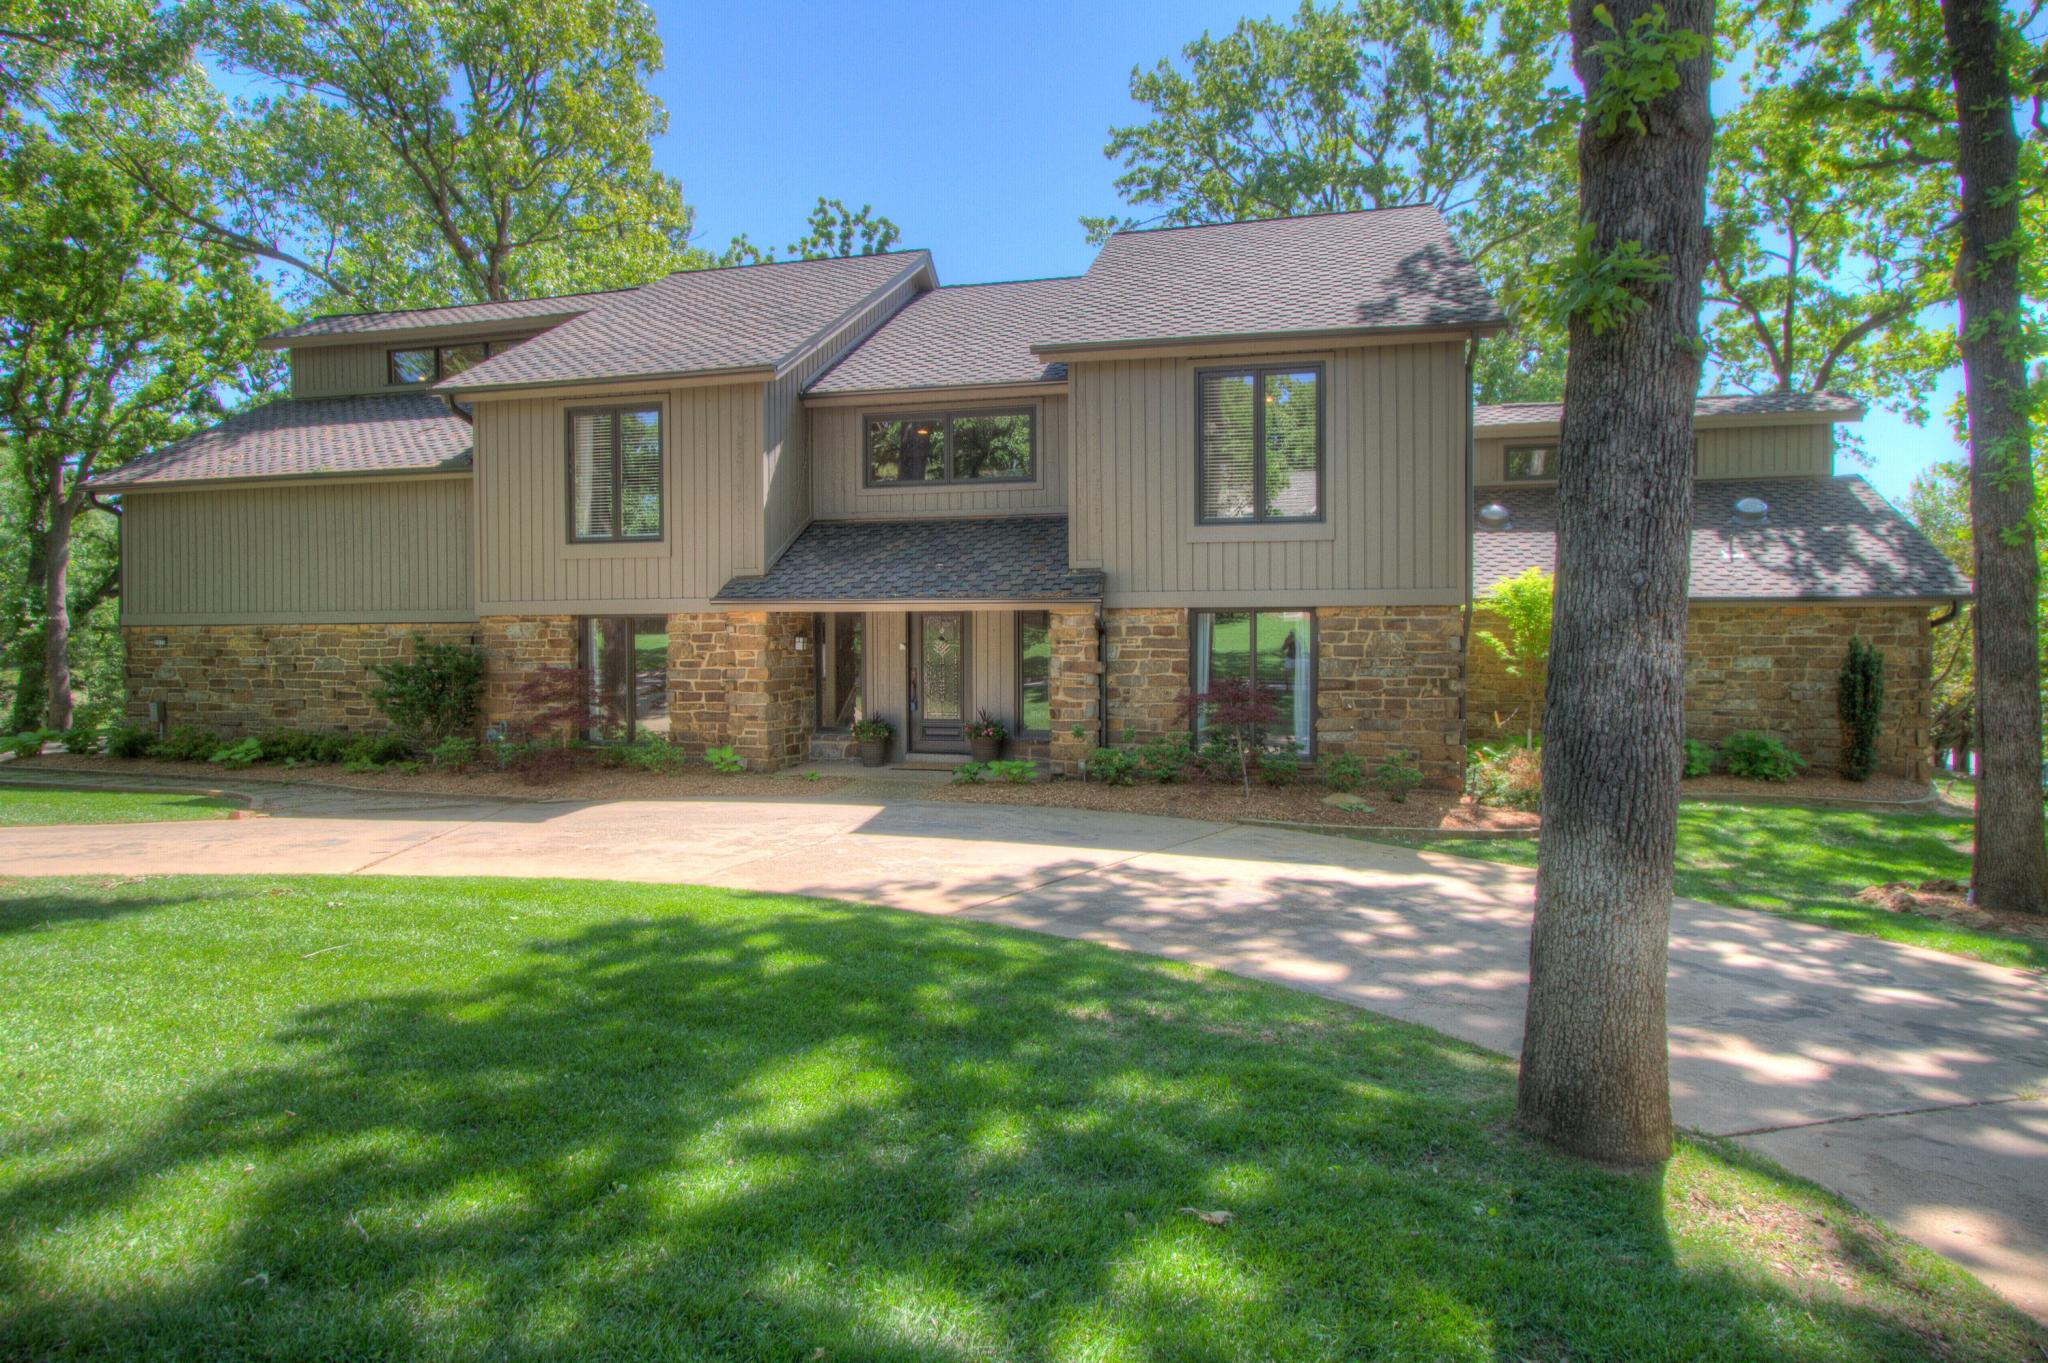 9935 S Quebec Ave Tulsa OK Recently Sold